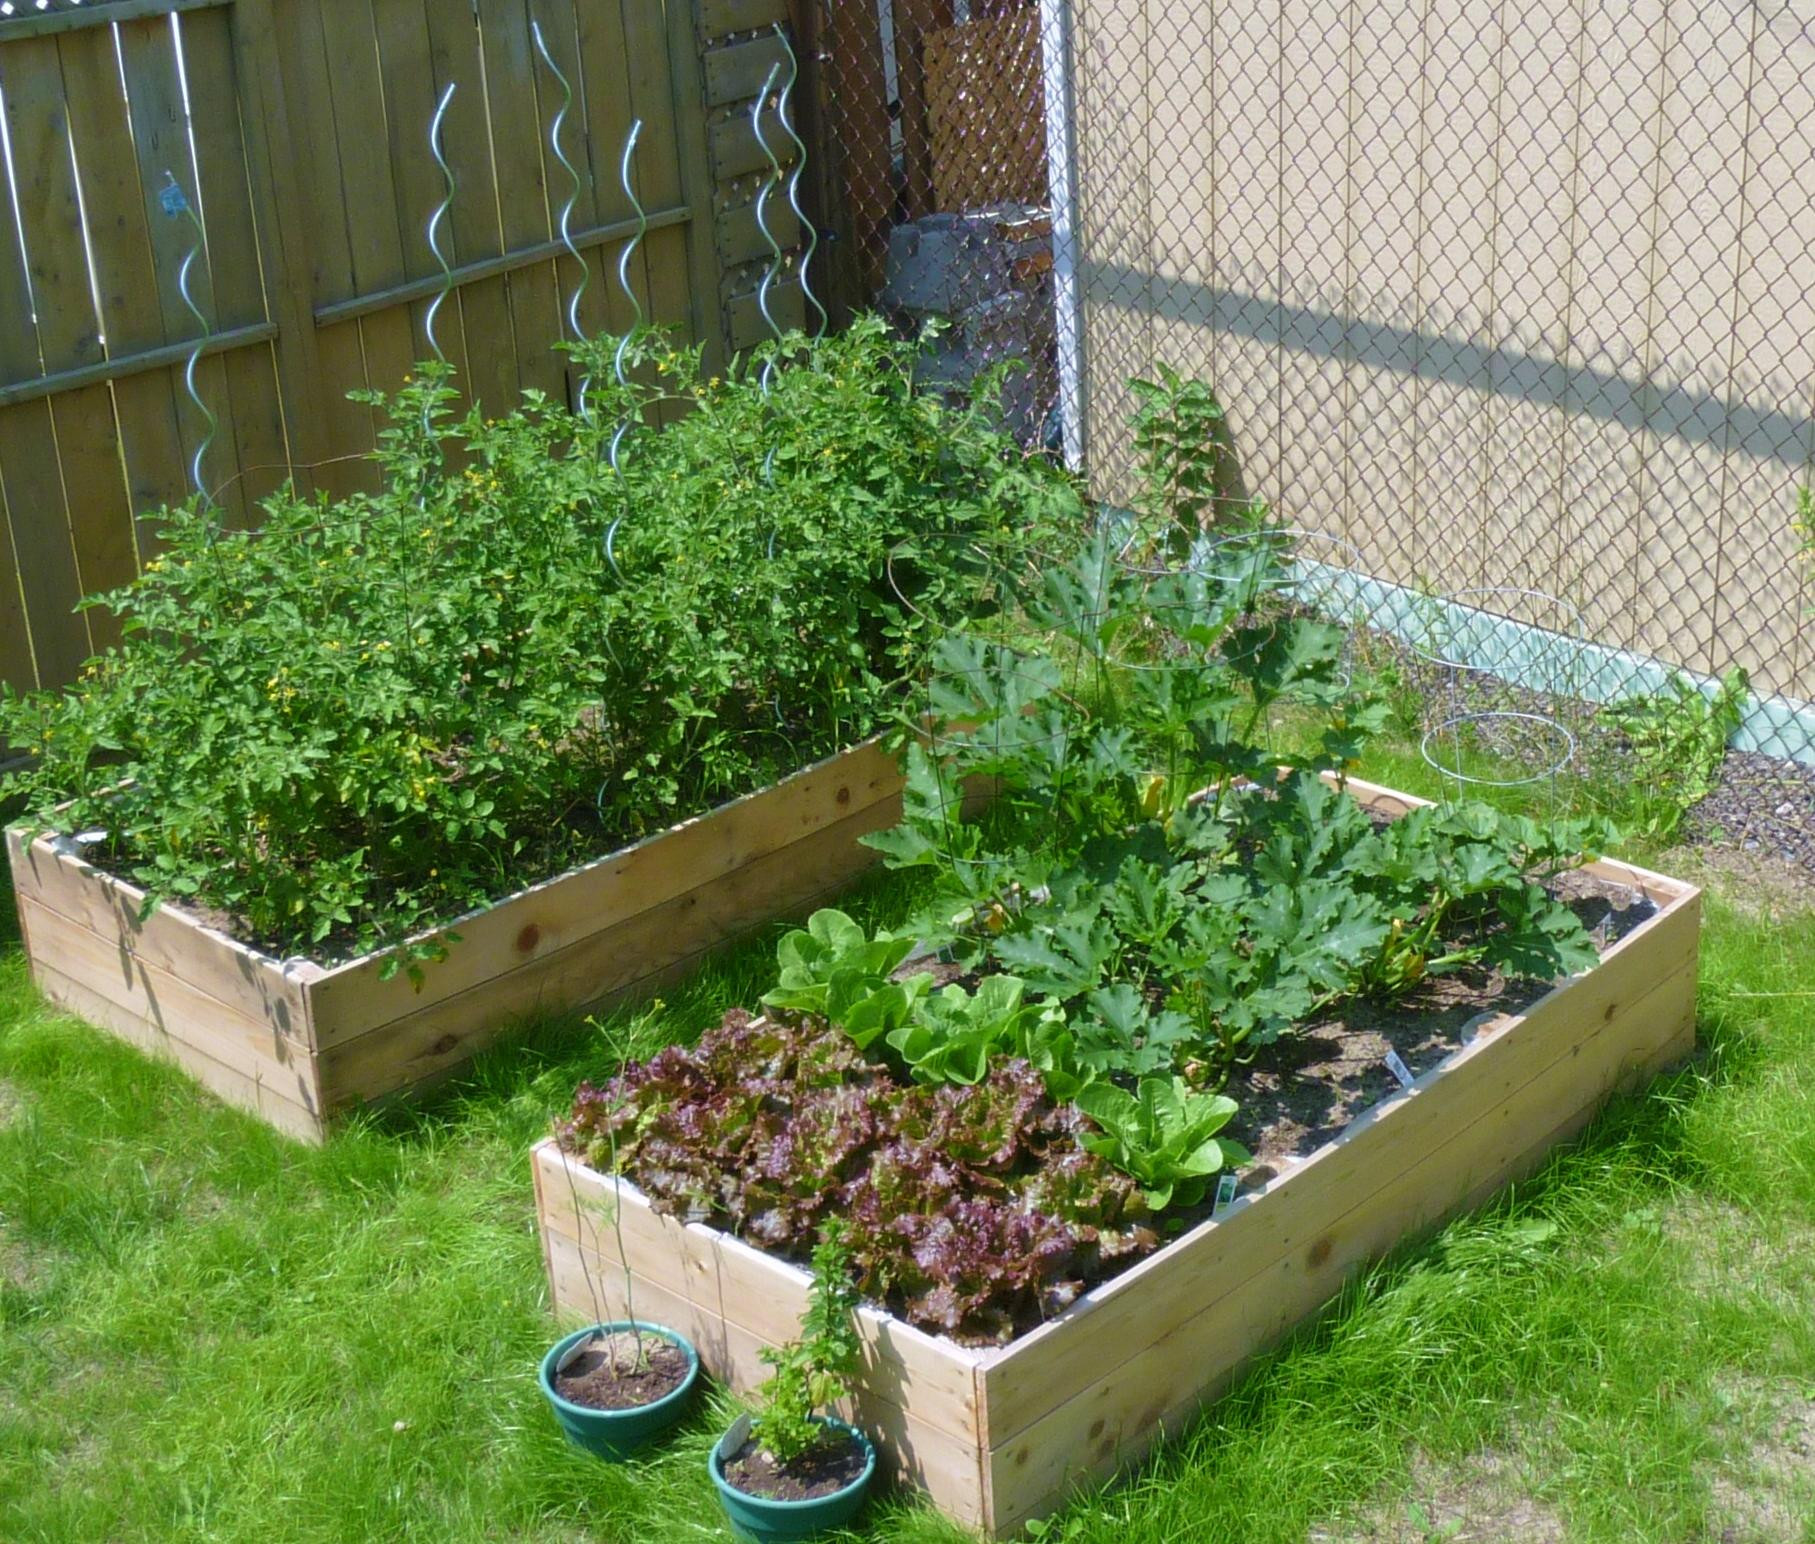 Best ideas about Raised Garden Planters . Save or Pin Ana White Now.